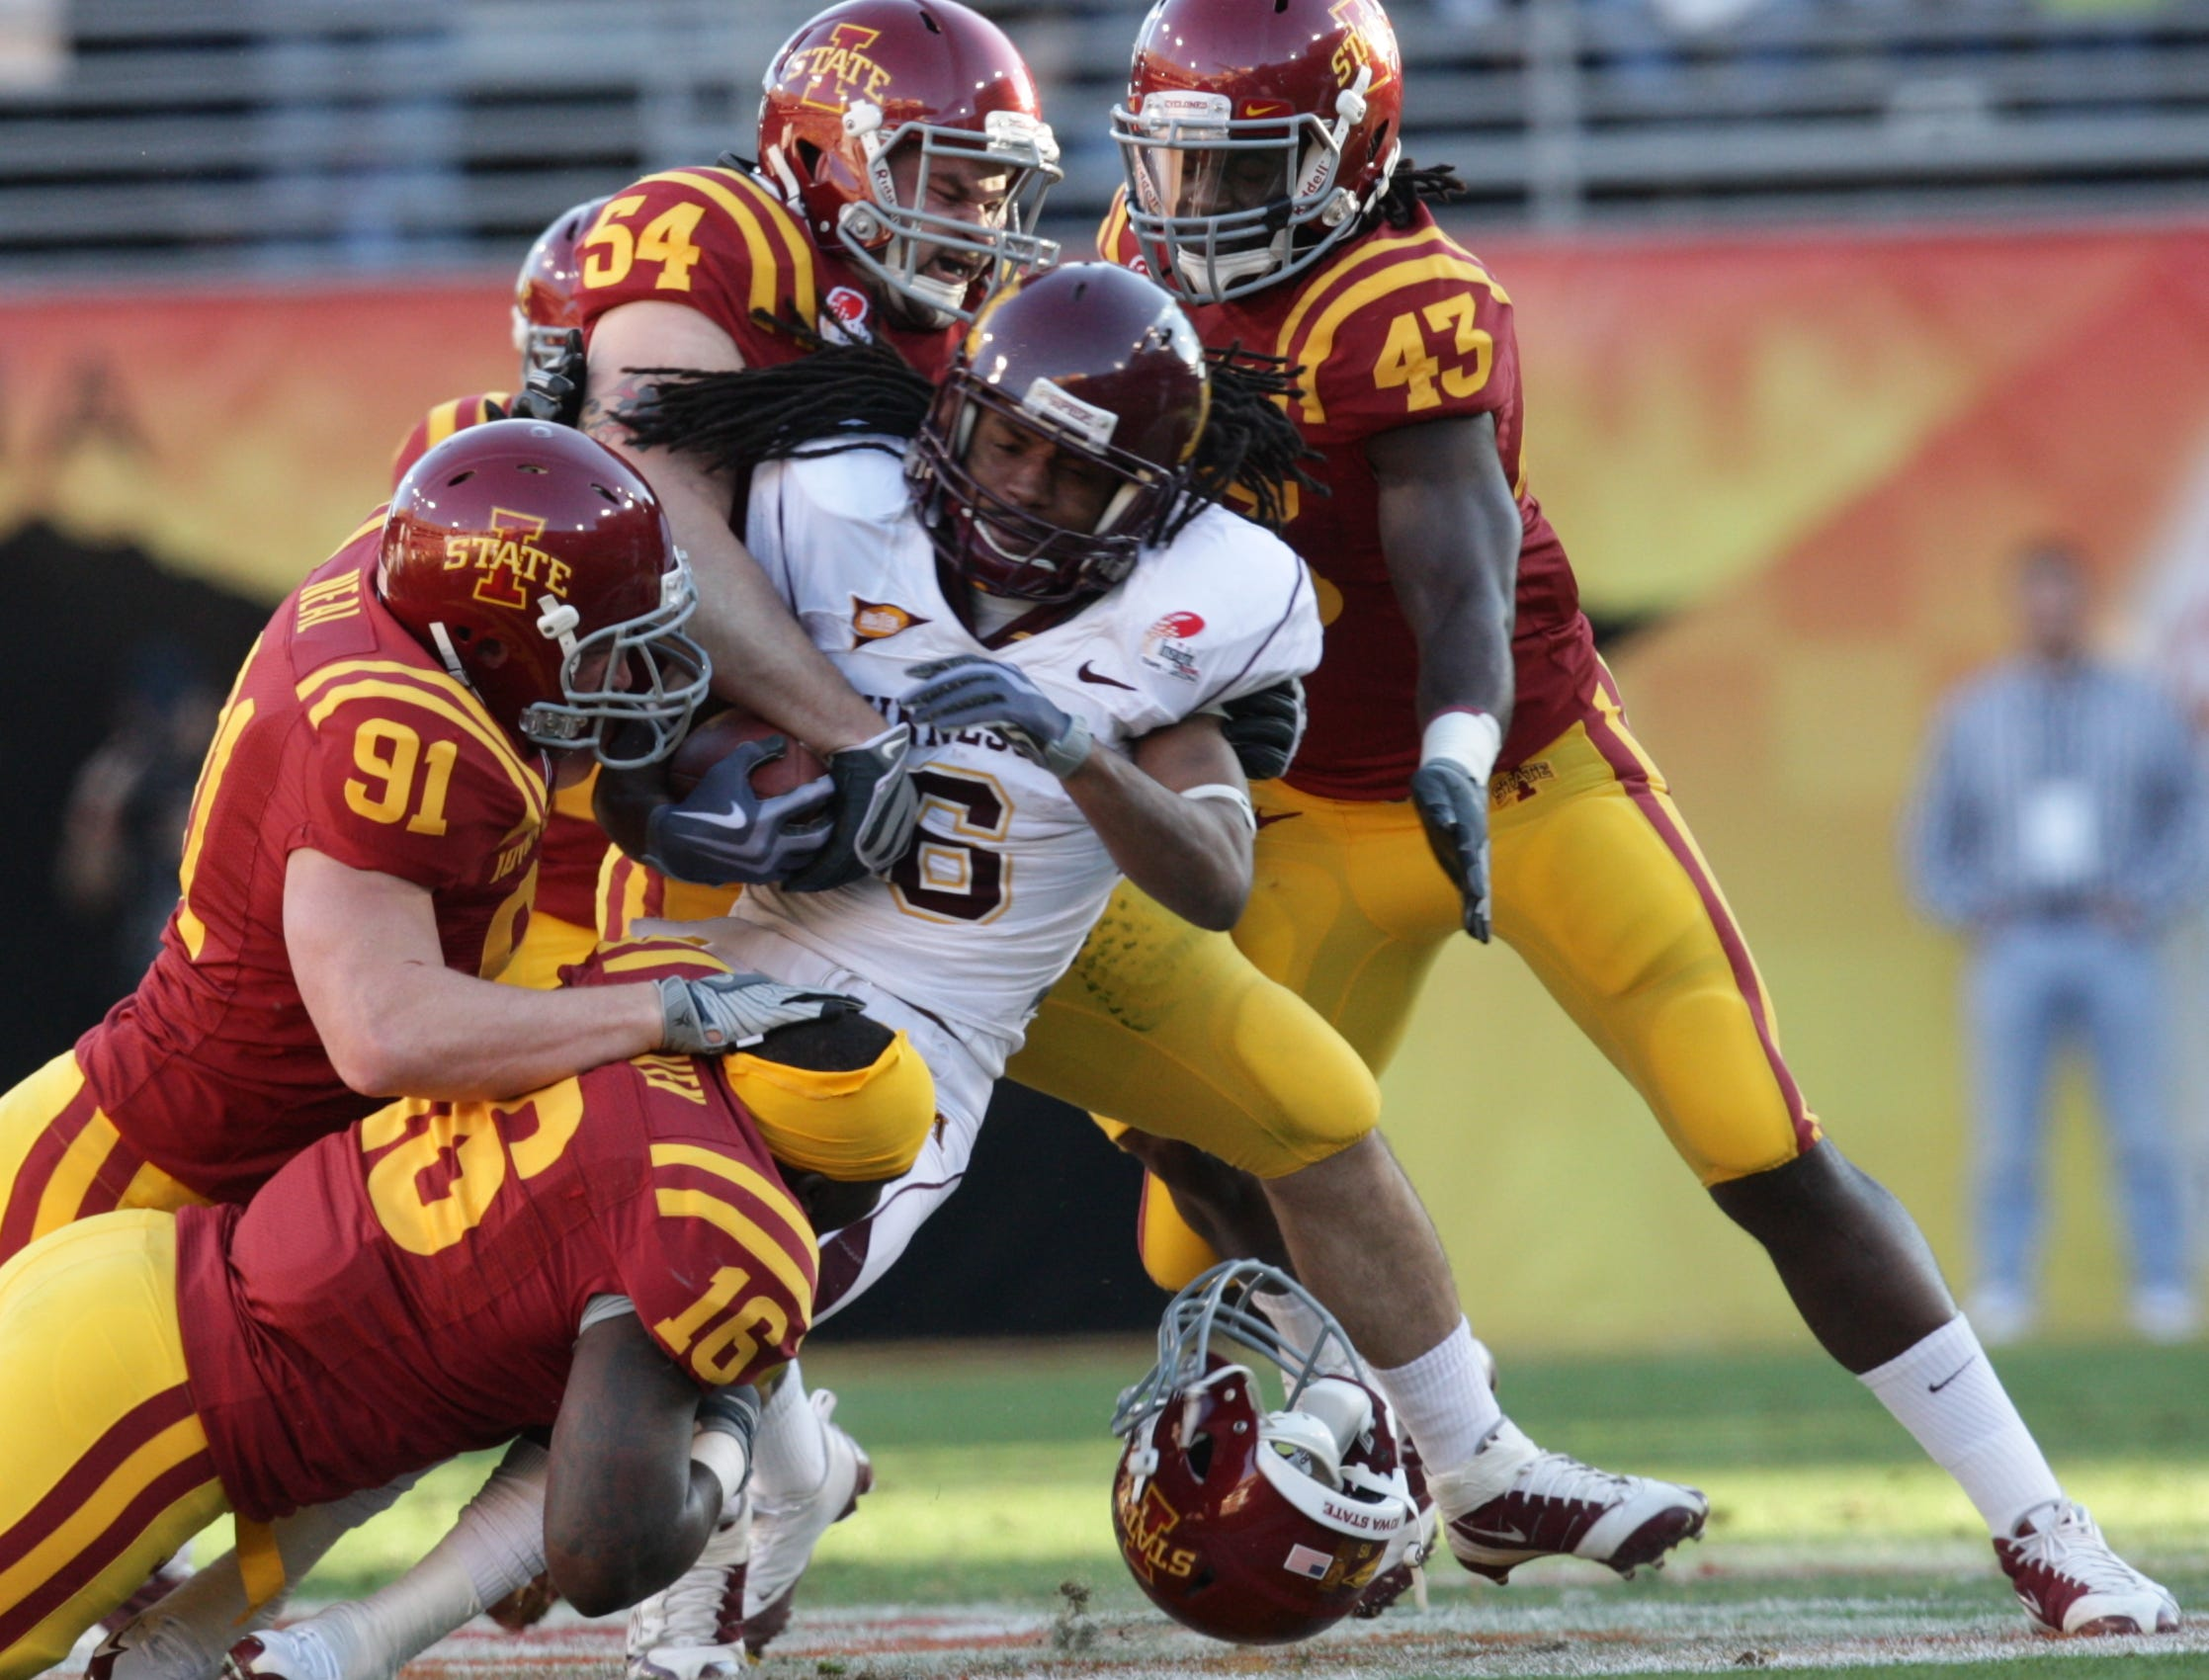 ISU's (16)Josh Raven (91)Patrick Neal (54)Jesse Smith and (43)Fred Garrin wrap up Minnesota's (6) Kevin Whaley. (16) Josh Raven lost his helmet on the play. S0101ISUBowl -Iowa State University played Minnesota in the Insight Bowl in Tempe, Arizona, Thursday, December 31, 2009 at Sun Devil Stadium. (Andrea Melendez/The Register)